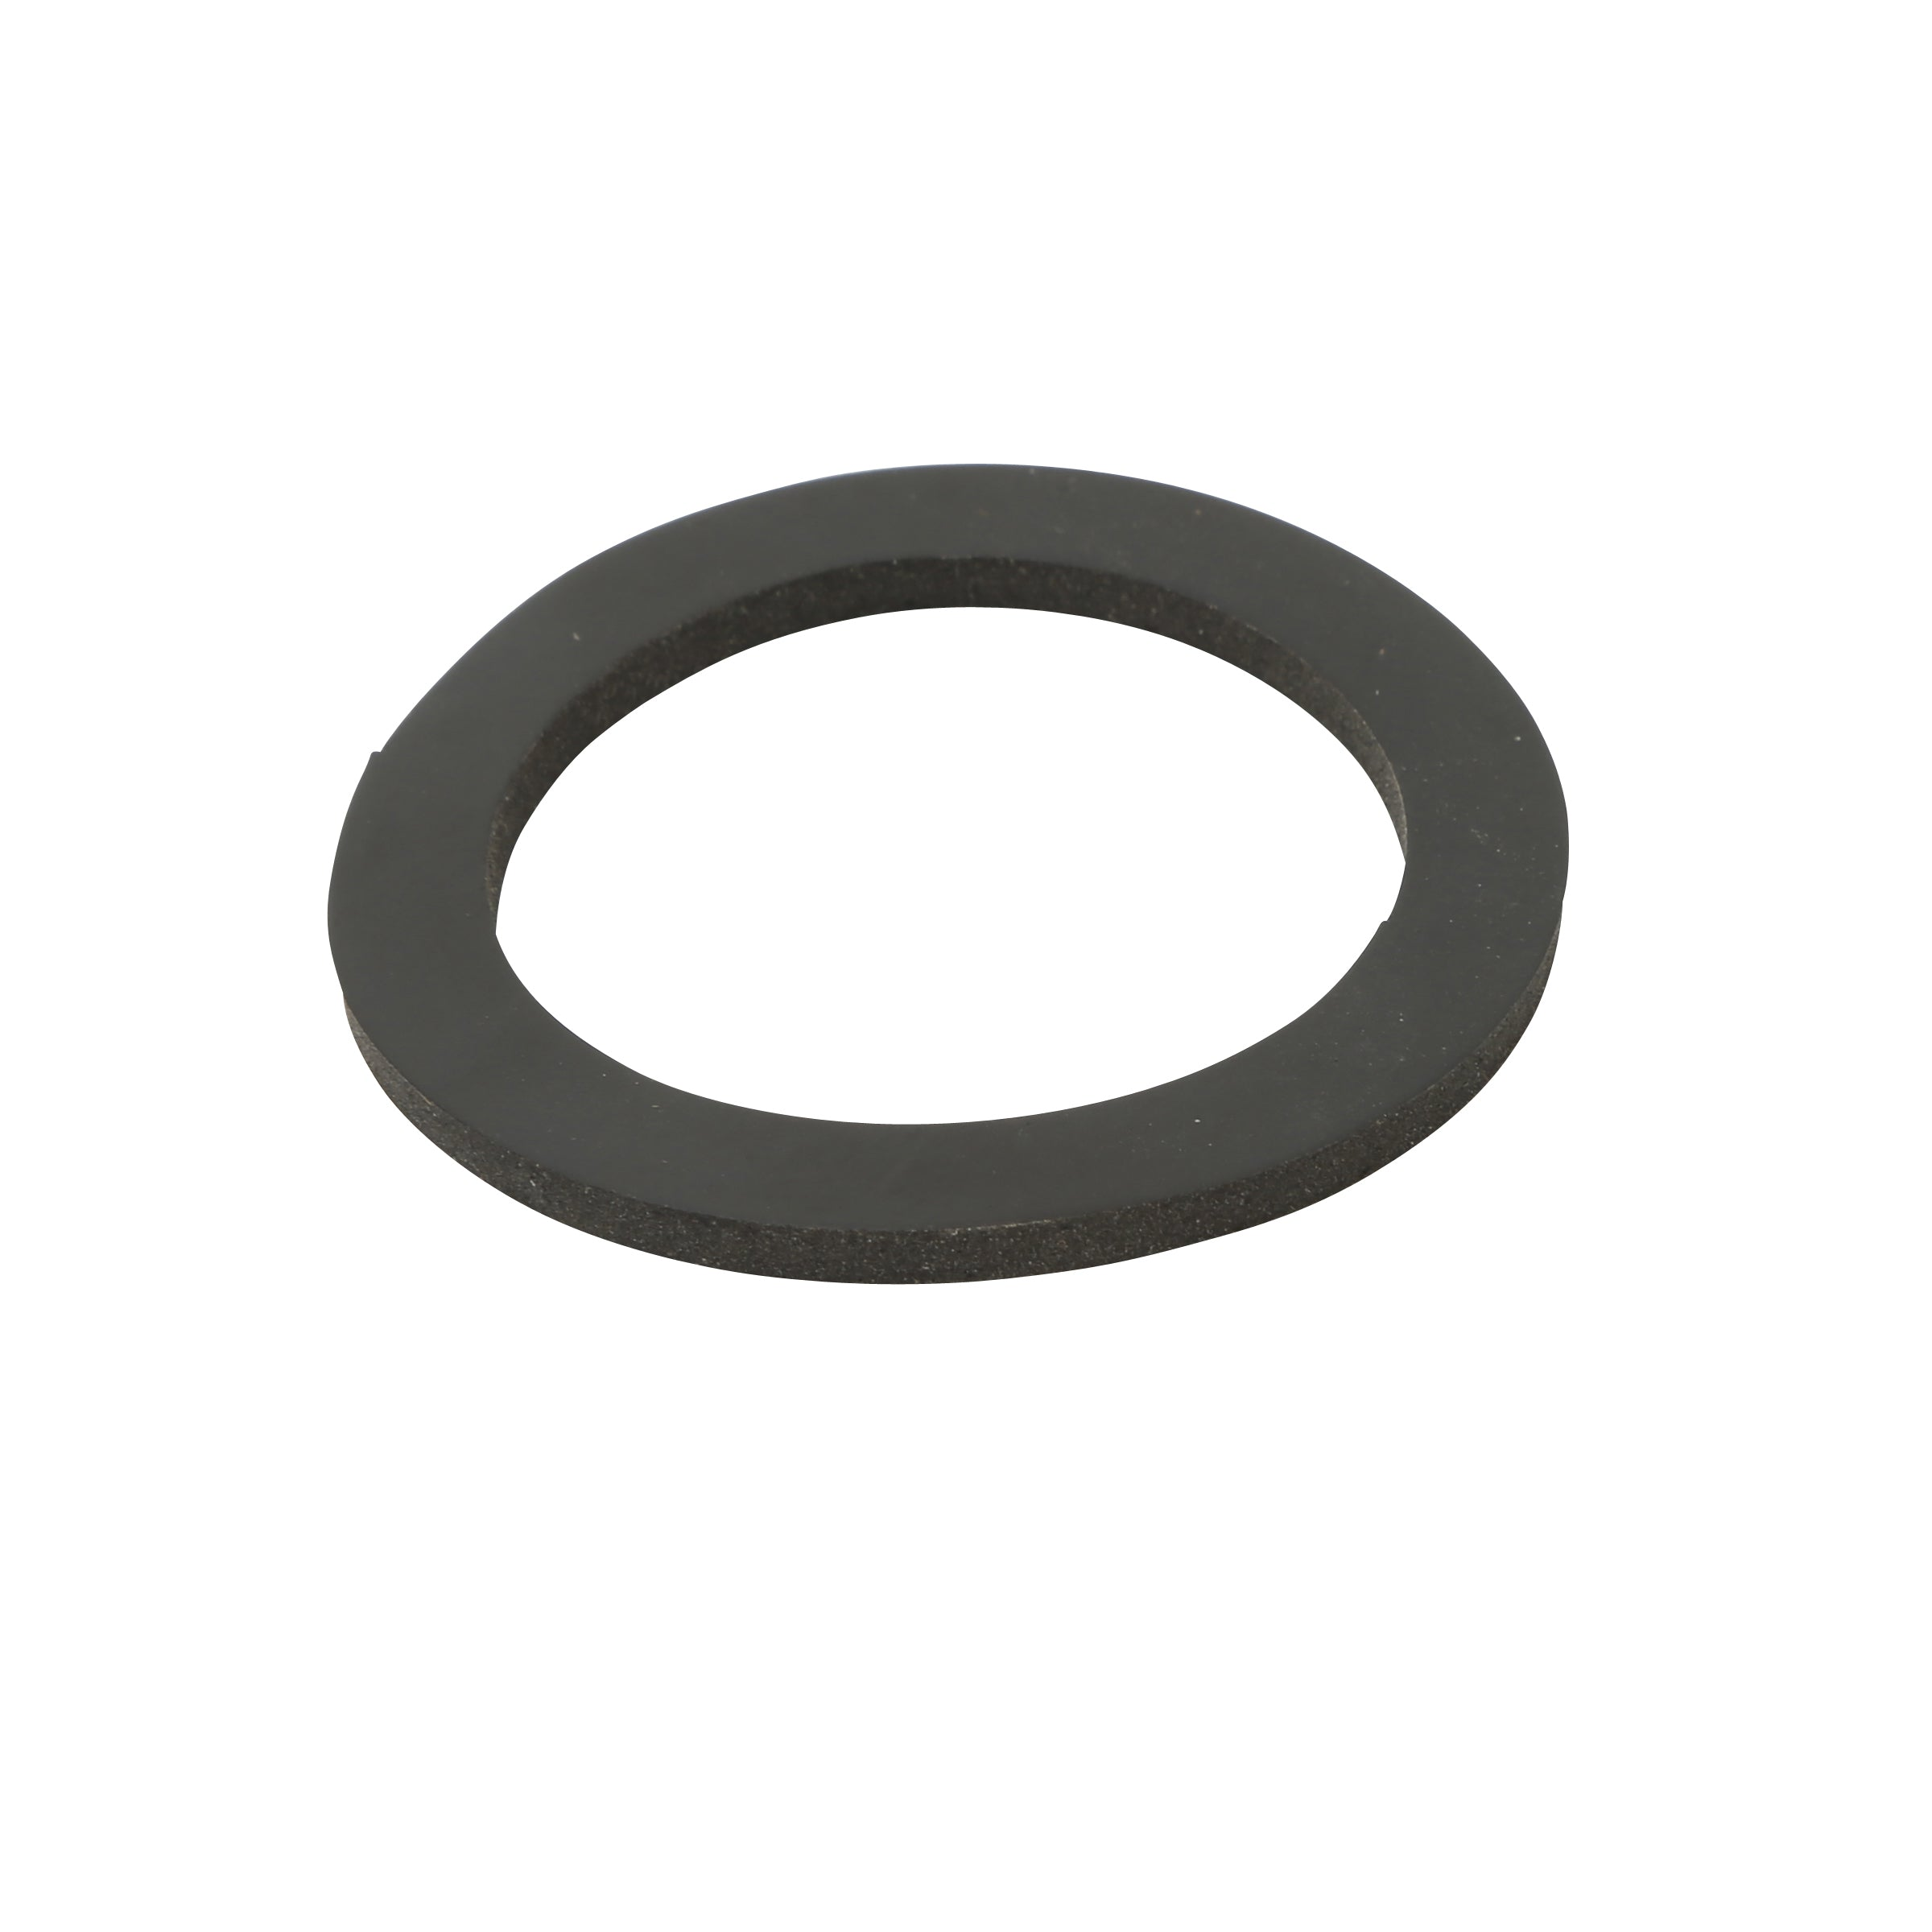 Glass Sediment Bulb Gasket (Neoprene) • 1928-48